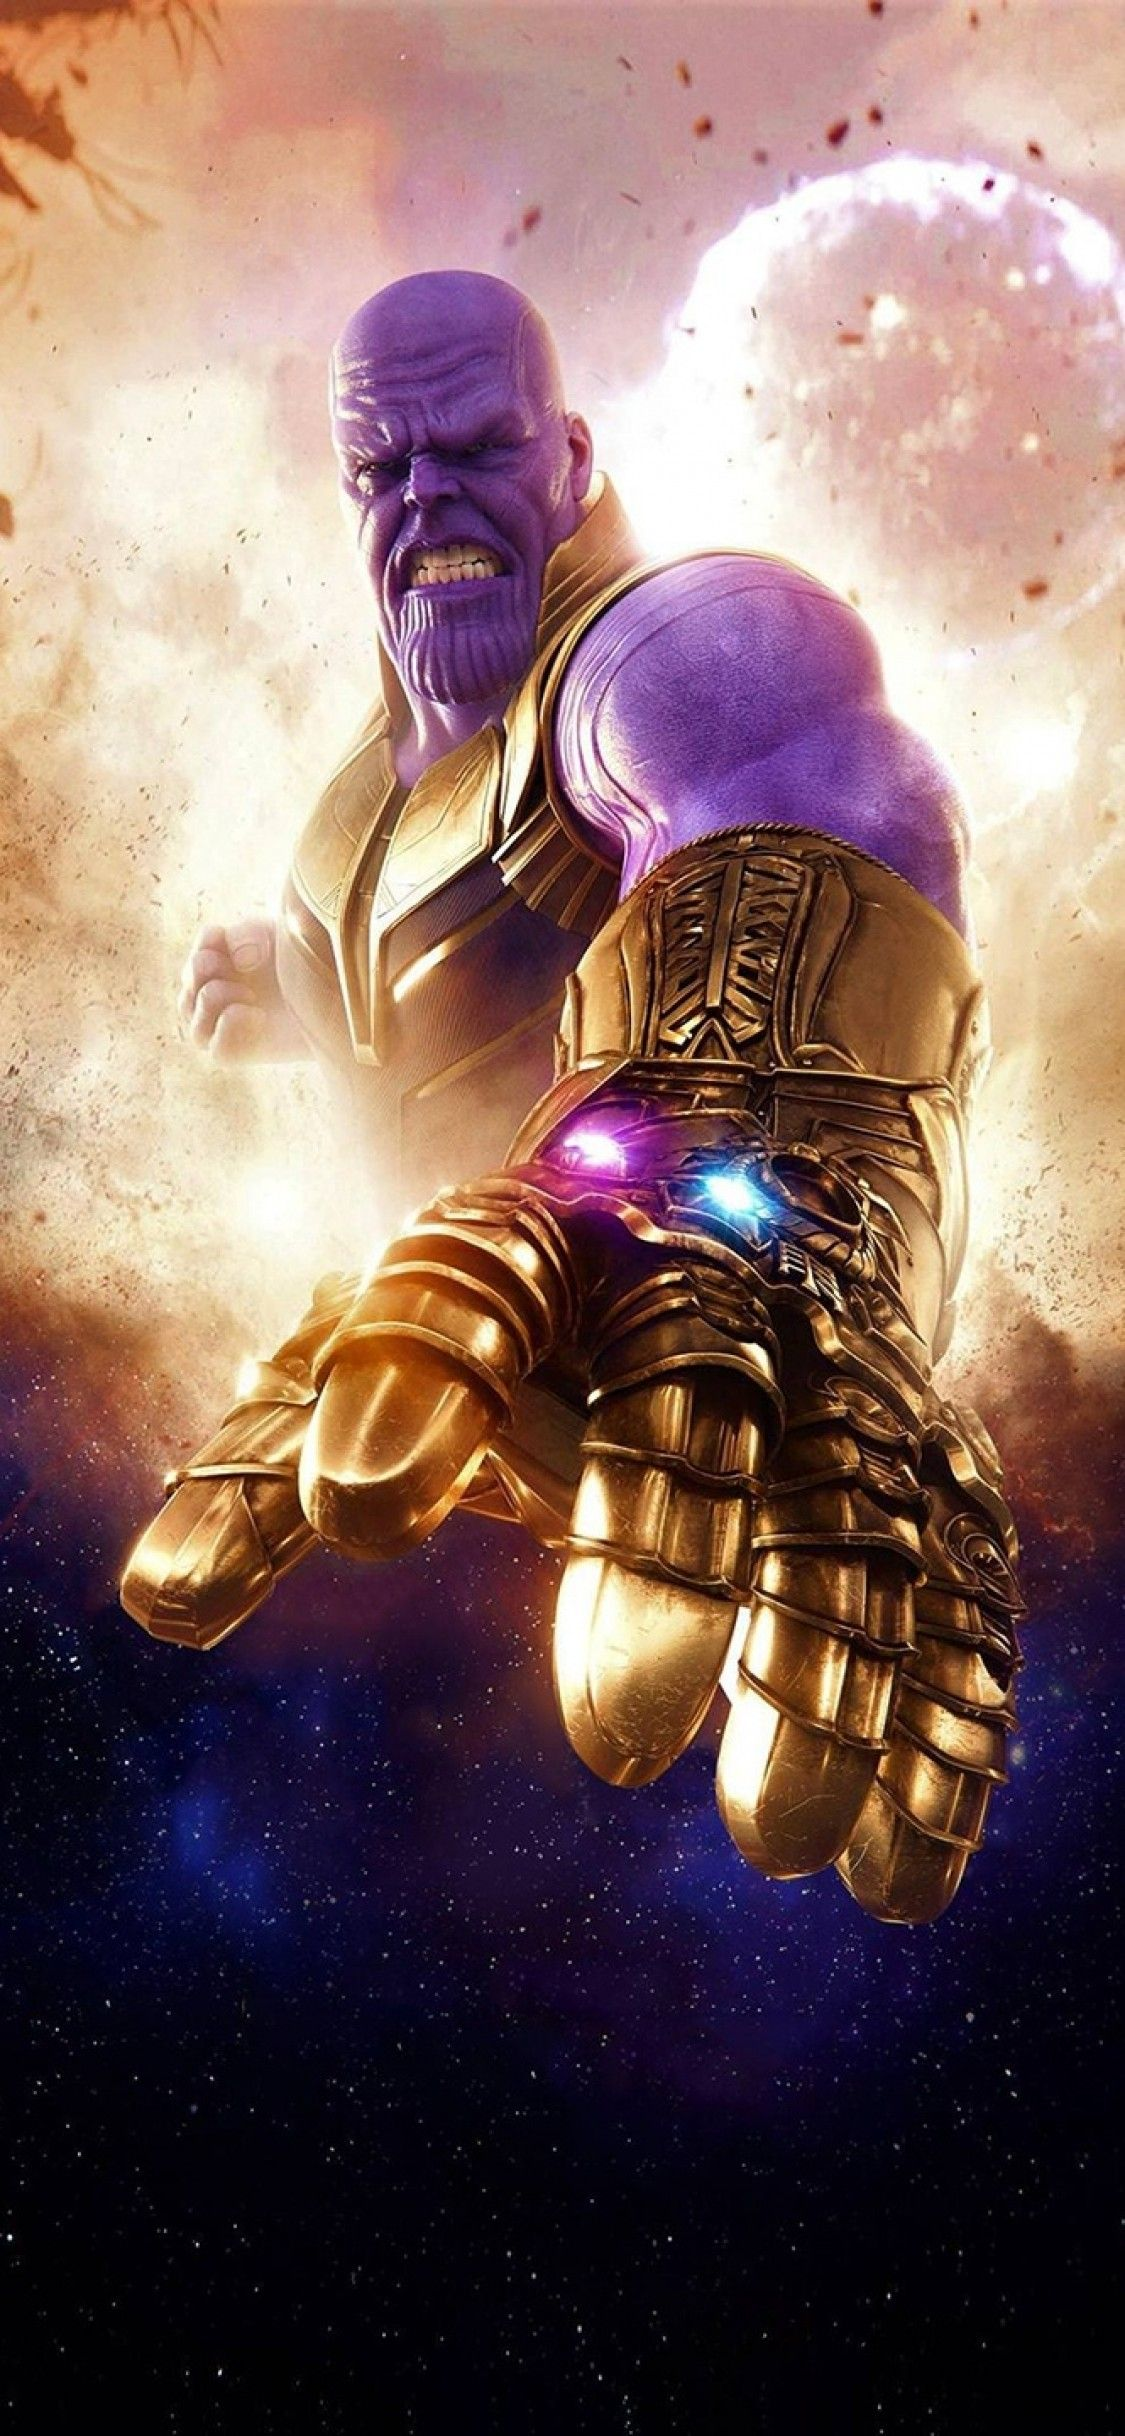 Thanos iPhone Wallpapers - Top Free ...